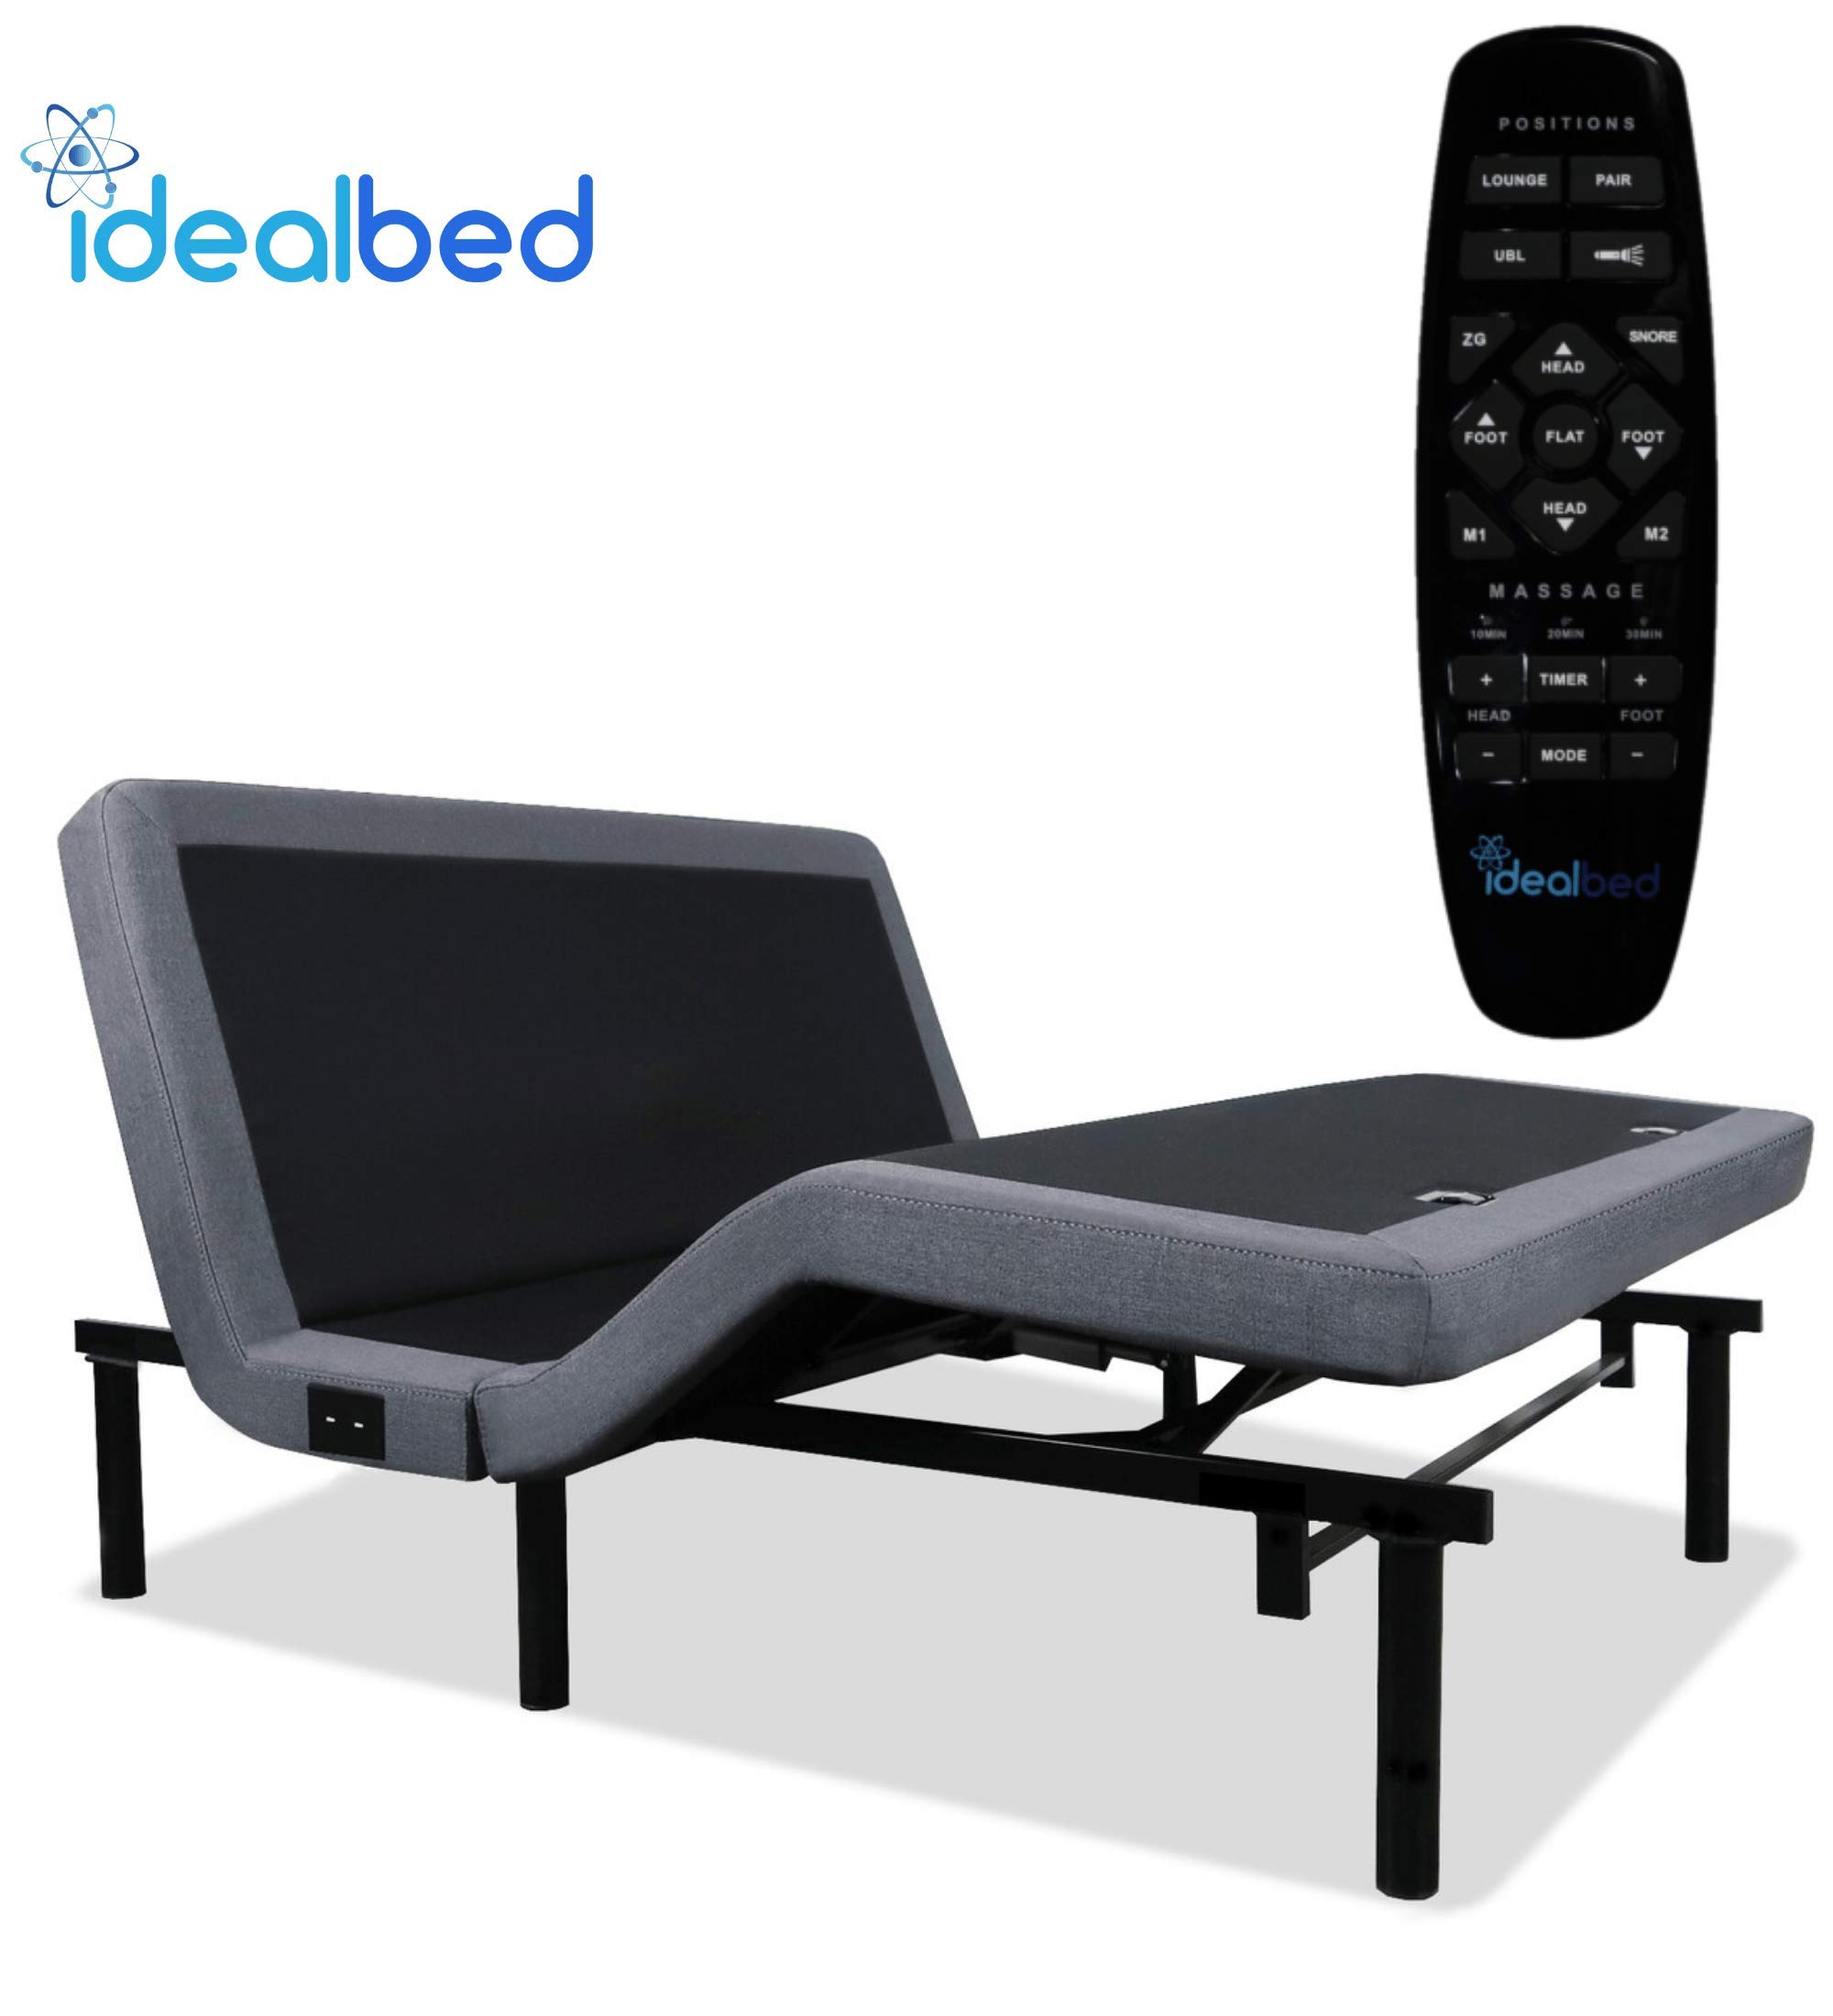 iDealBed 4i Custom Adjustable Bed Base, Wireless, Massage, Dual USB Charge, Nightlight, Zero-Gravity, Anti-Snore, Memory Pre-Sets, Queen